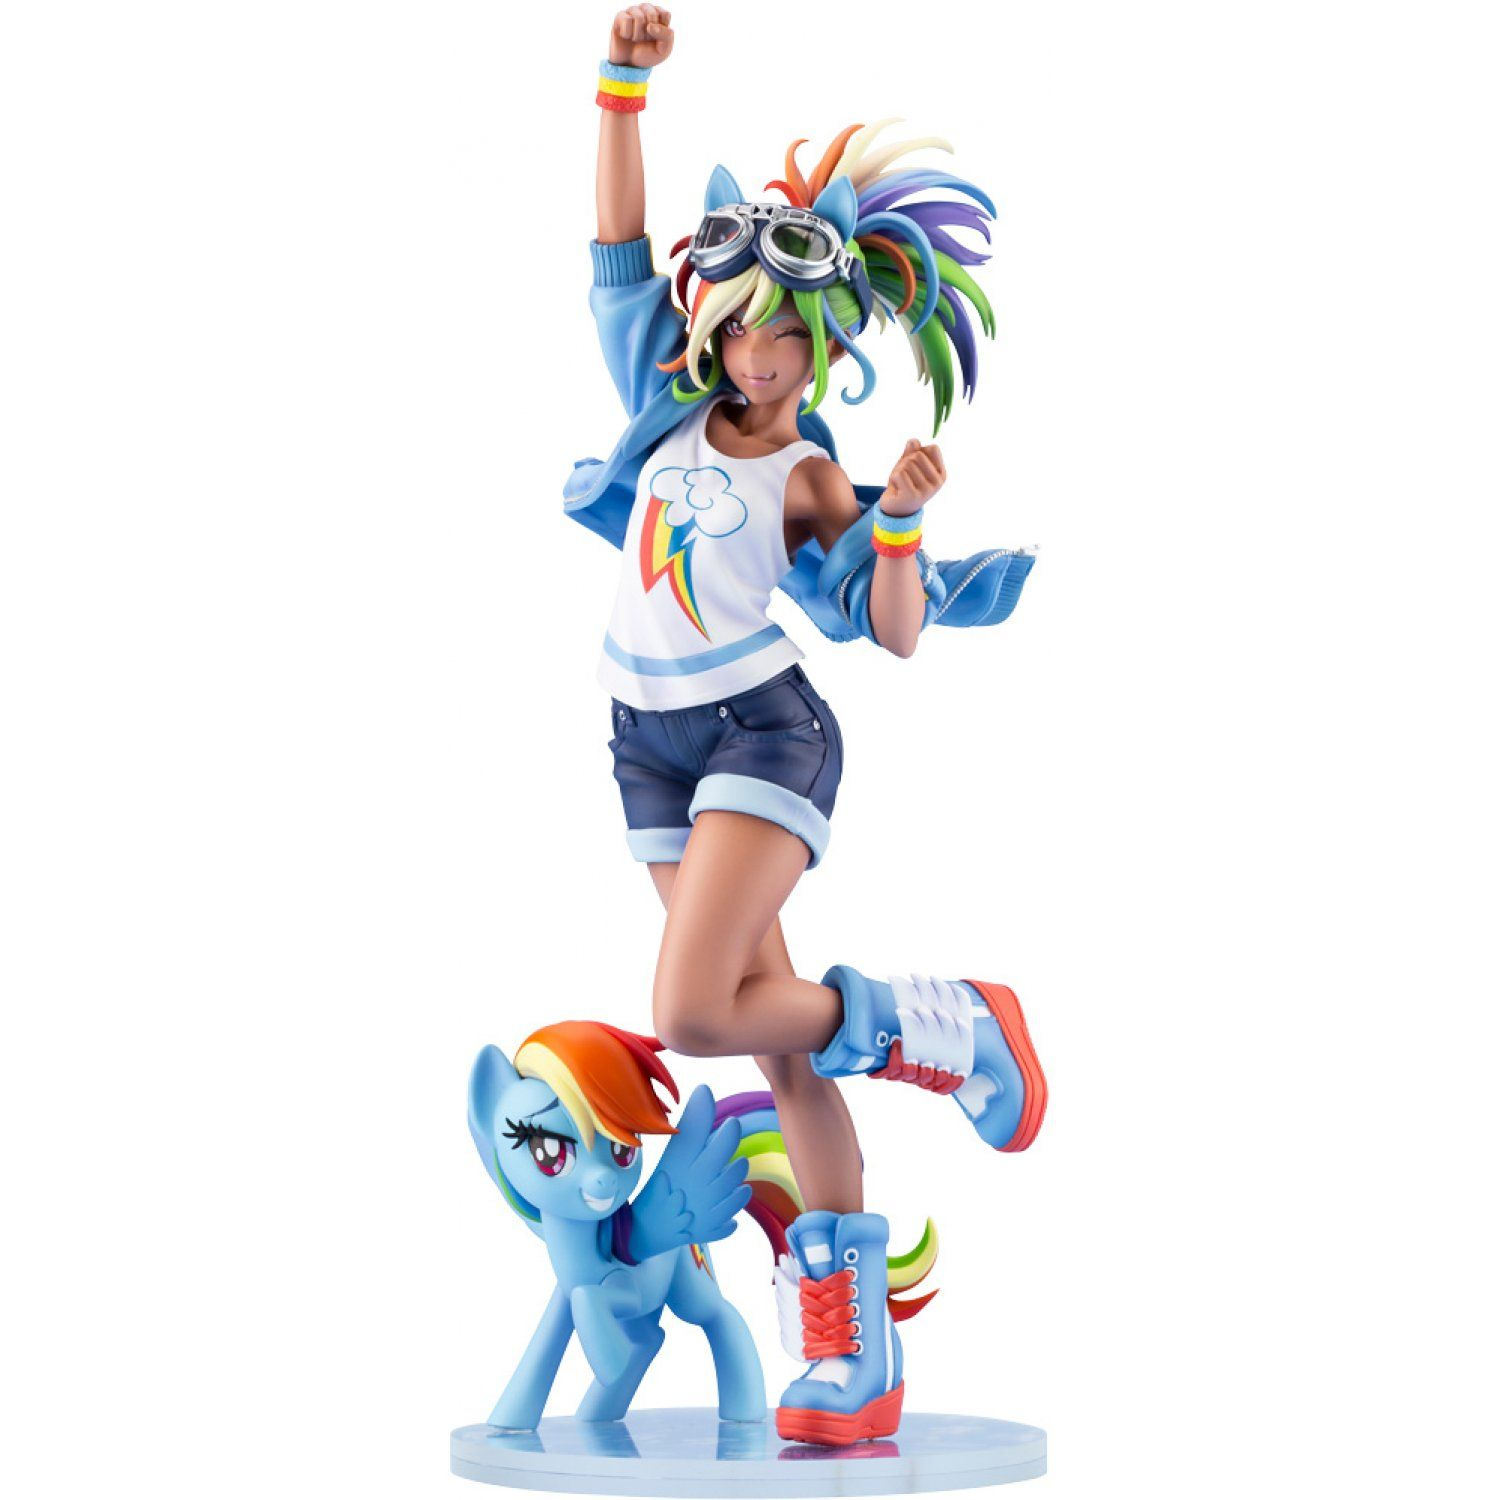 My Little Pony Bishoujo 1 7 Scale Pre Painted Figure Rainbow Dash